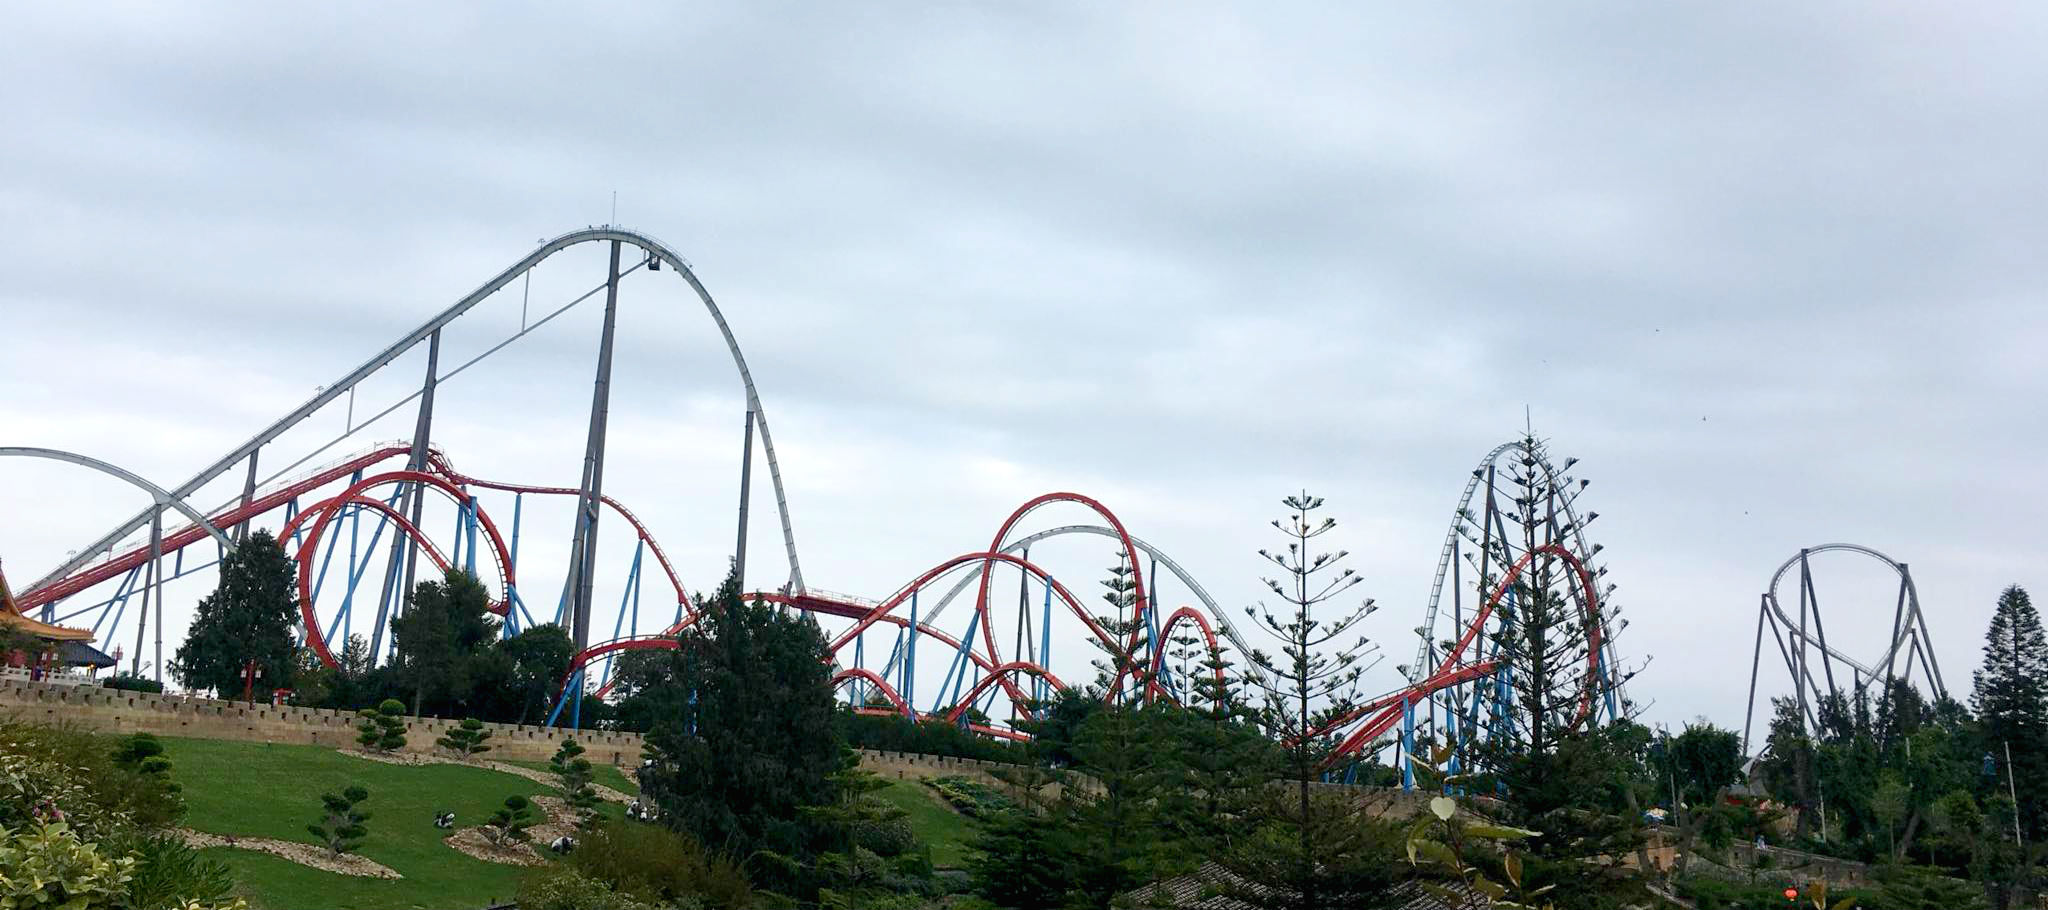 Rollercoaster in PortAventura World